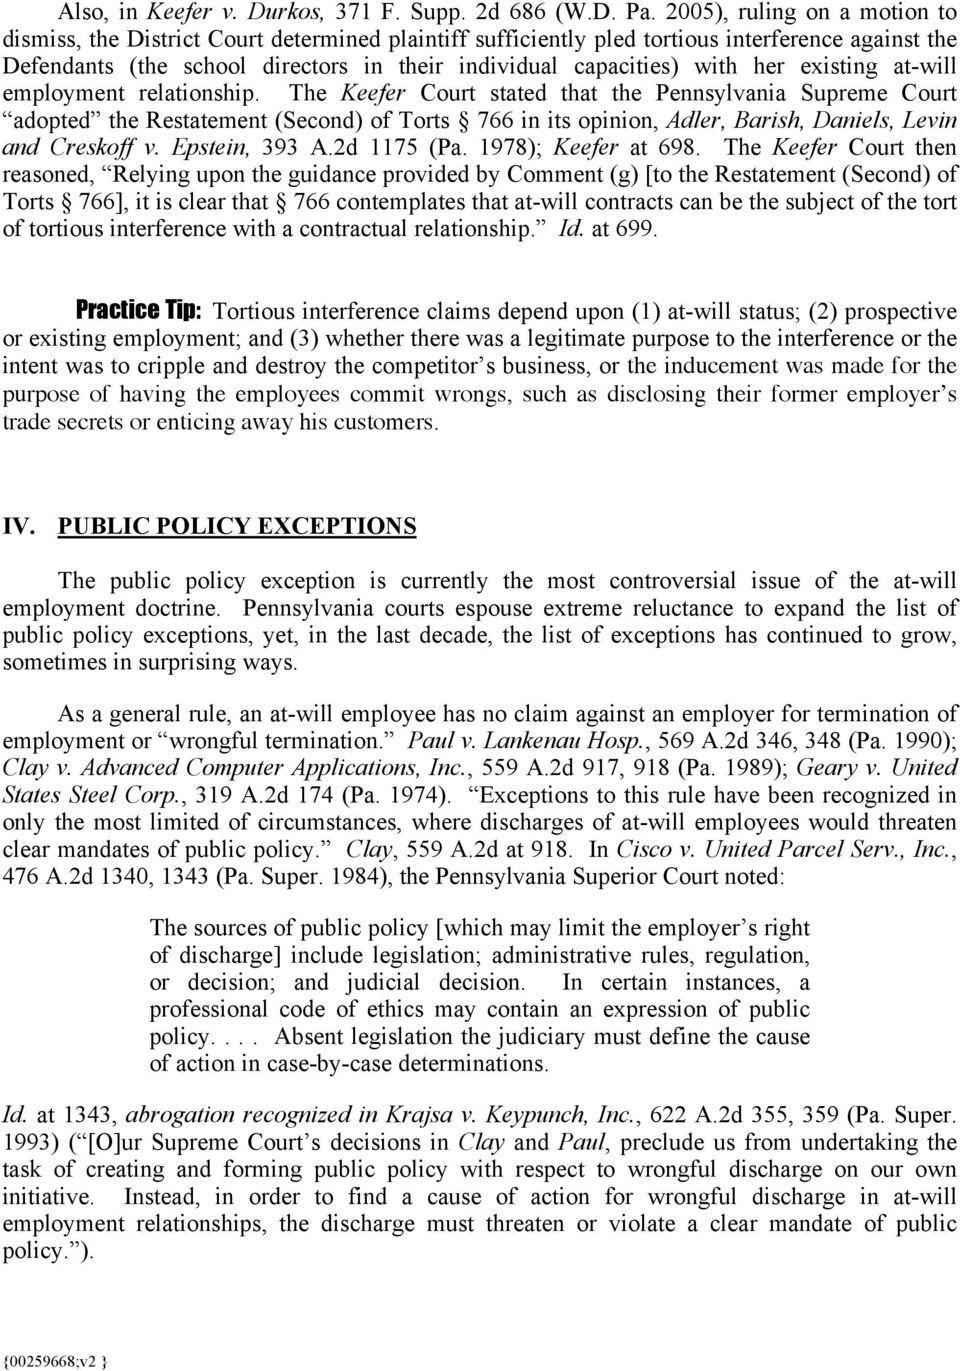 FIRE AT-WILL: EMPLOYEE TERMINATIONS IN PENNSYLVANIA - PDF